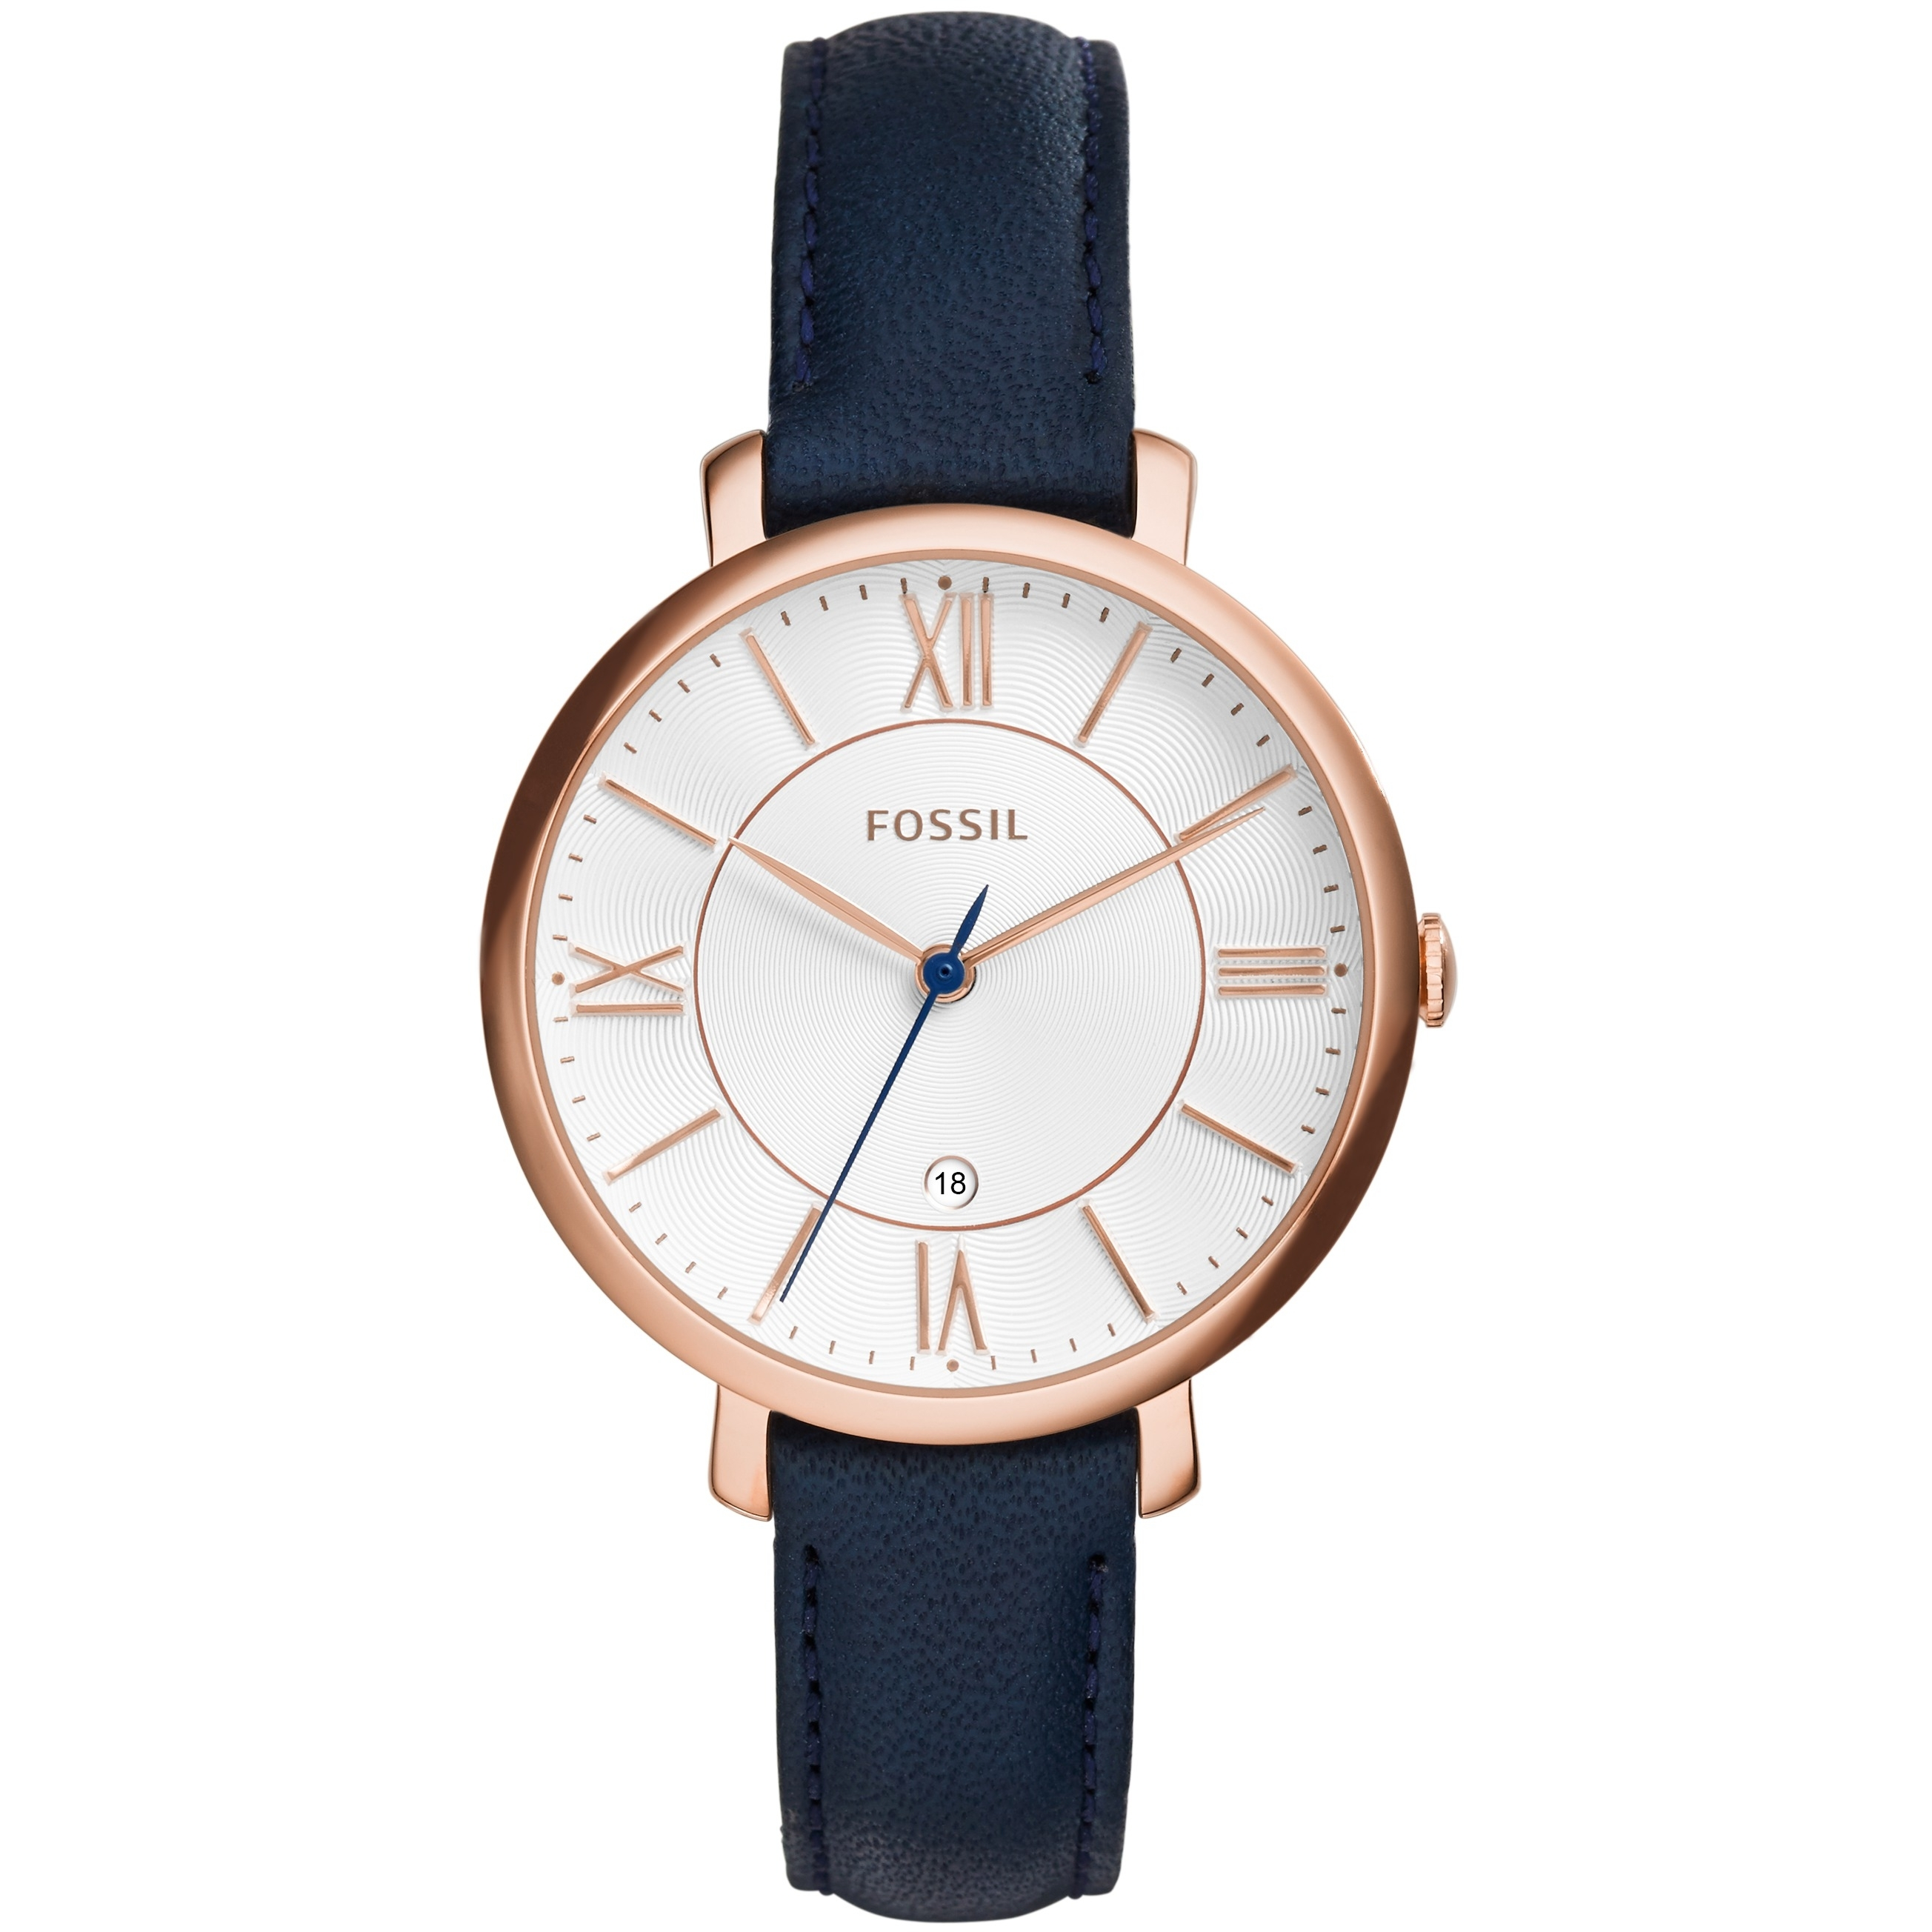 16a325379bfe Fossil Jacqueline